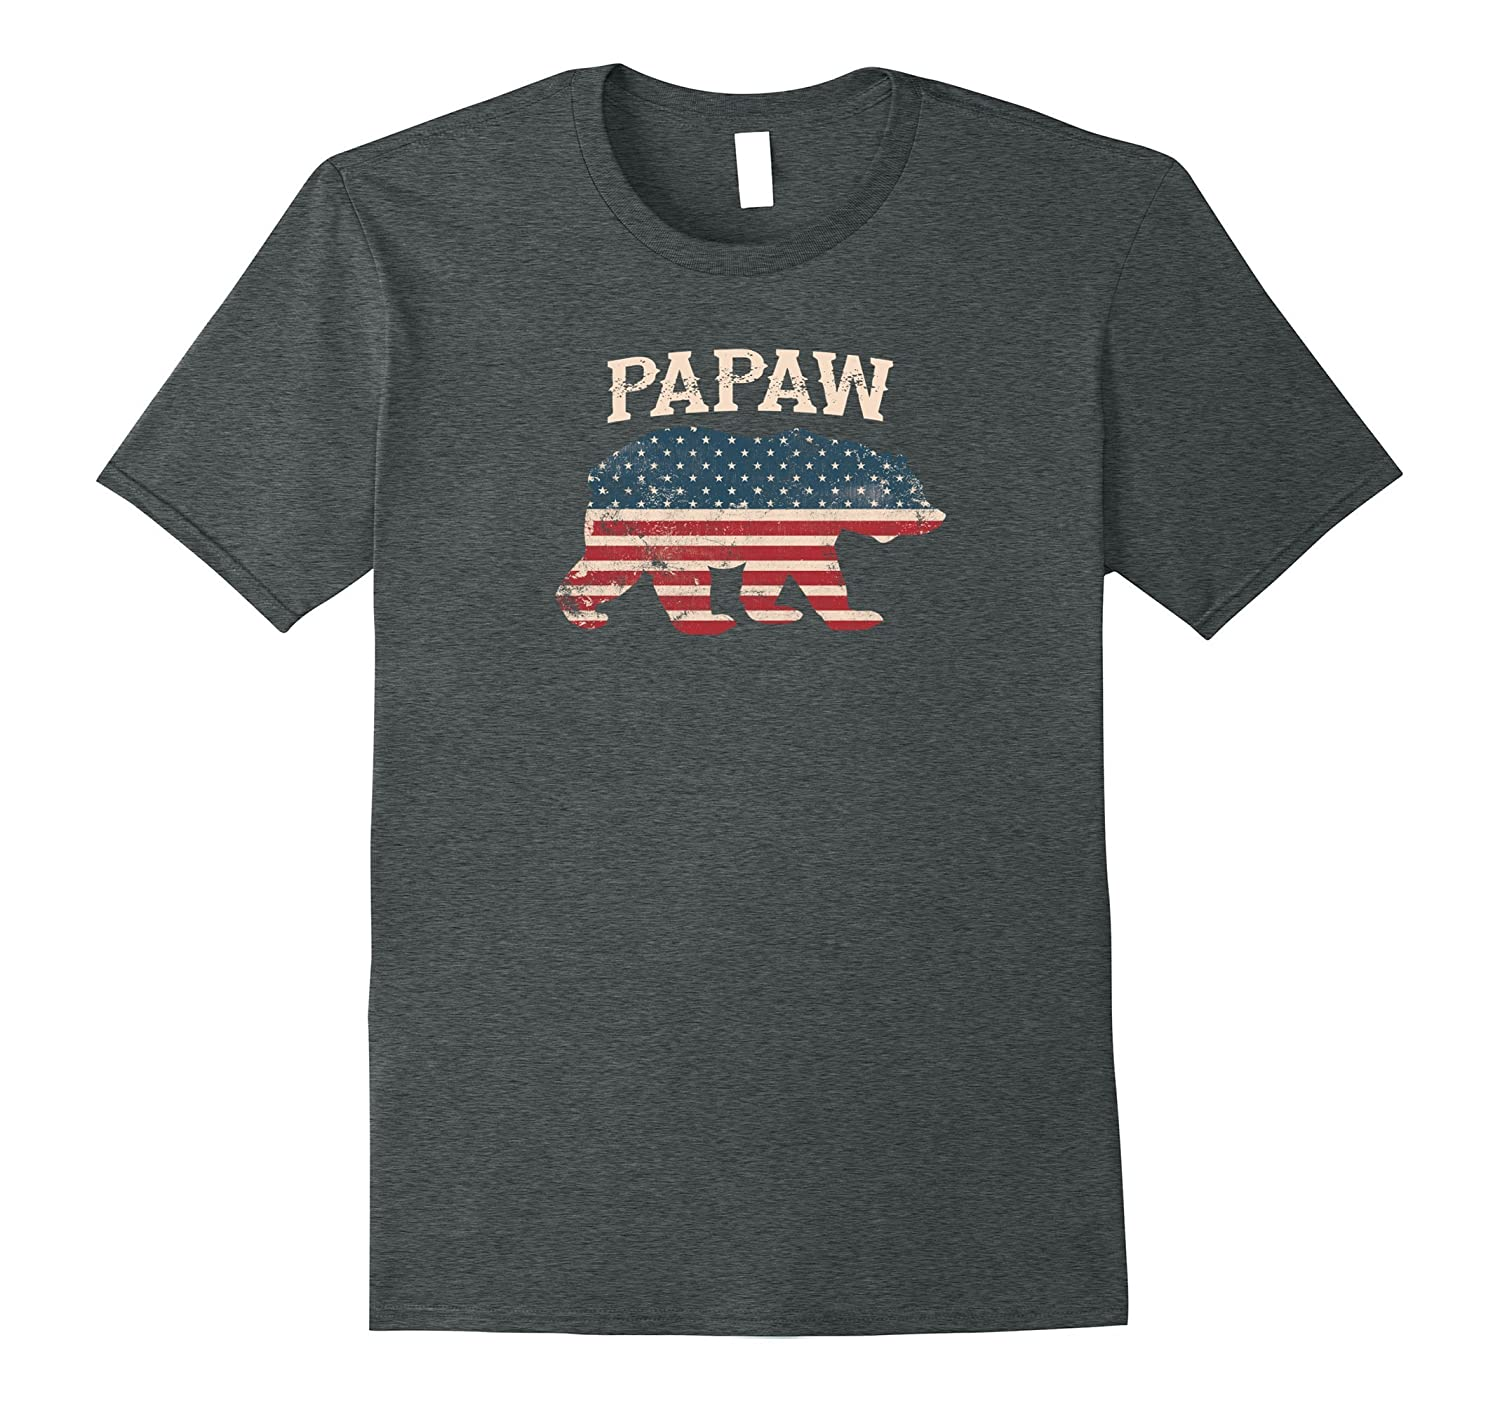 Papaw USA Flag Bear T Shirt – 4th of July Independence Day